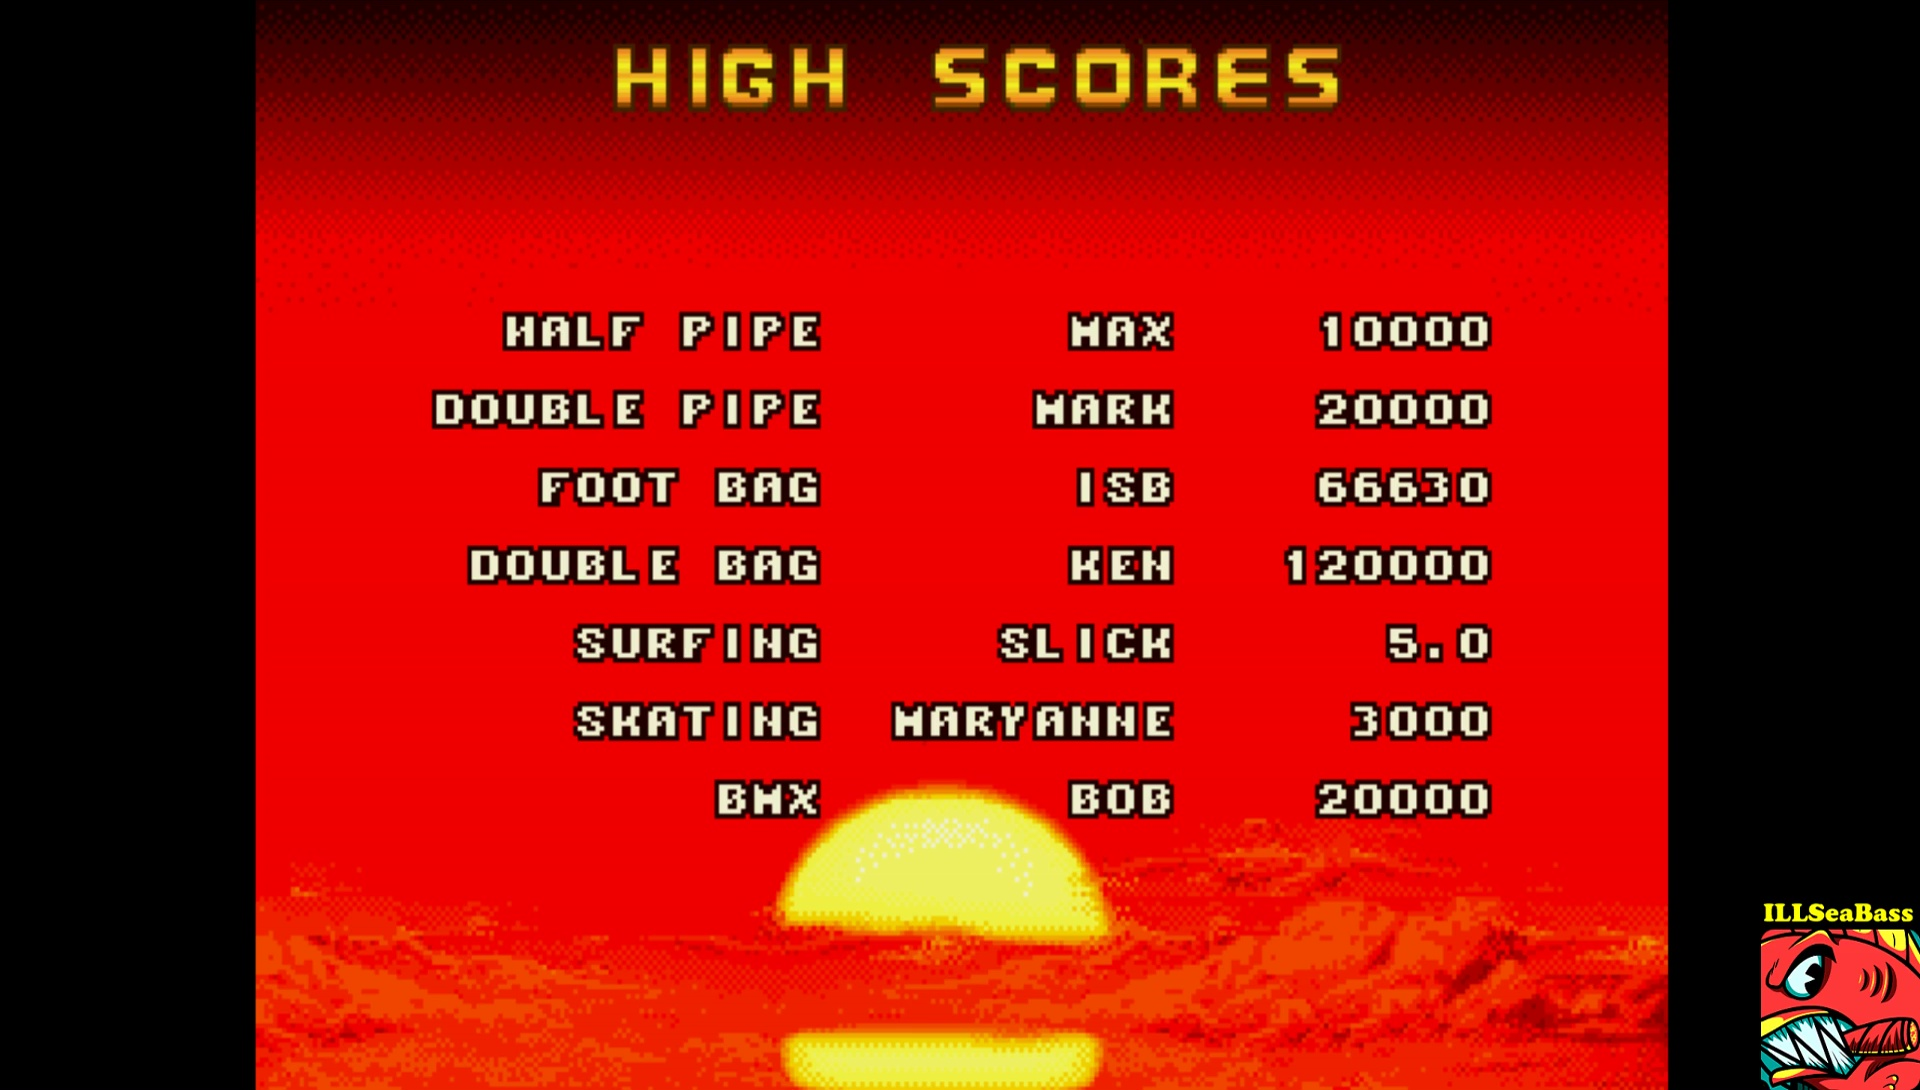 ILLSeaBass: California Games: Foot Bag (Sega Genesis / MegaDrive Emulated) 66,630 points on 2017-03-27 20:49:09